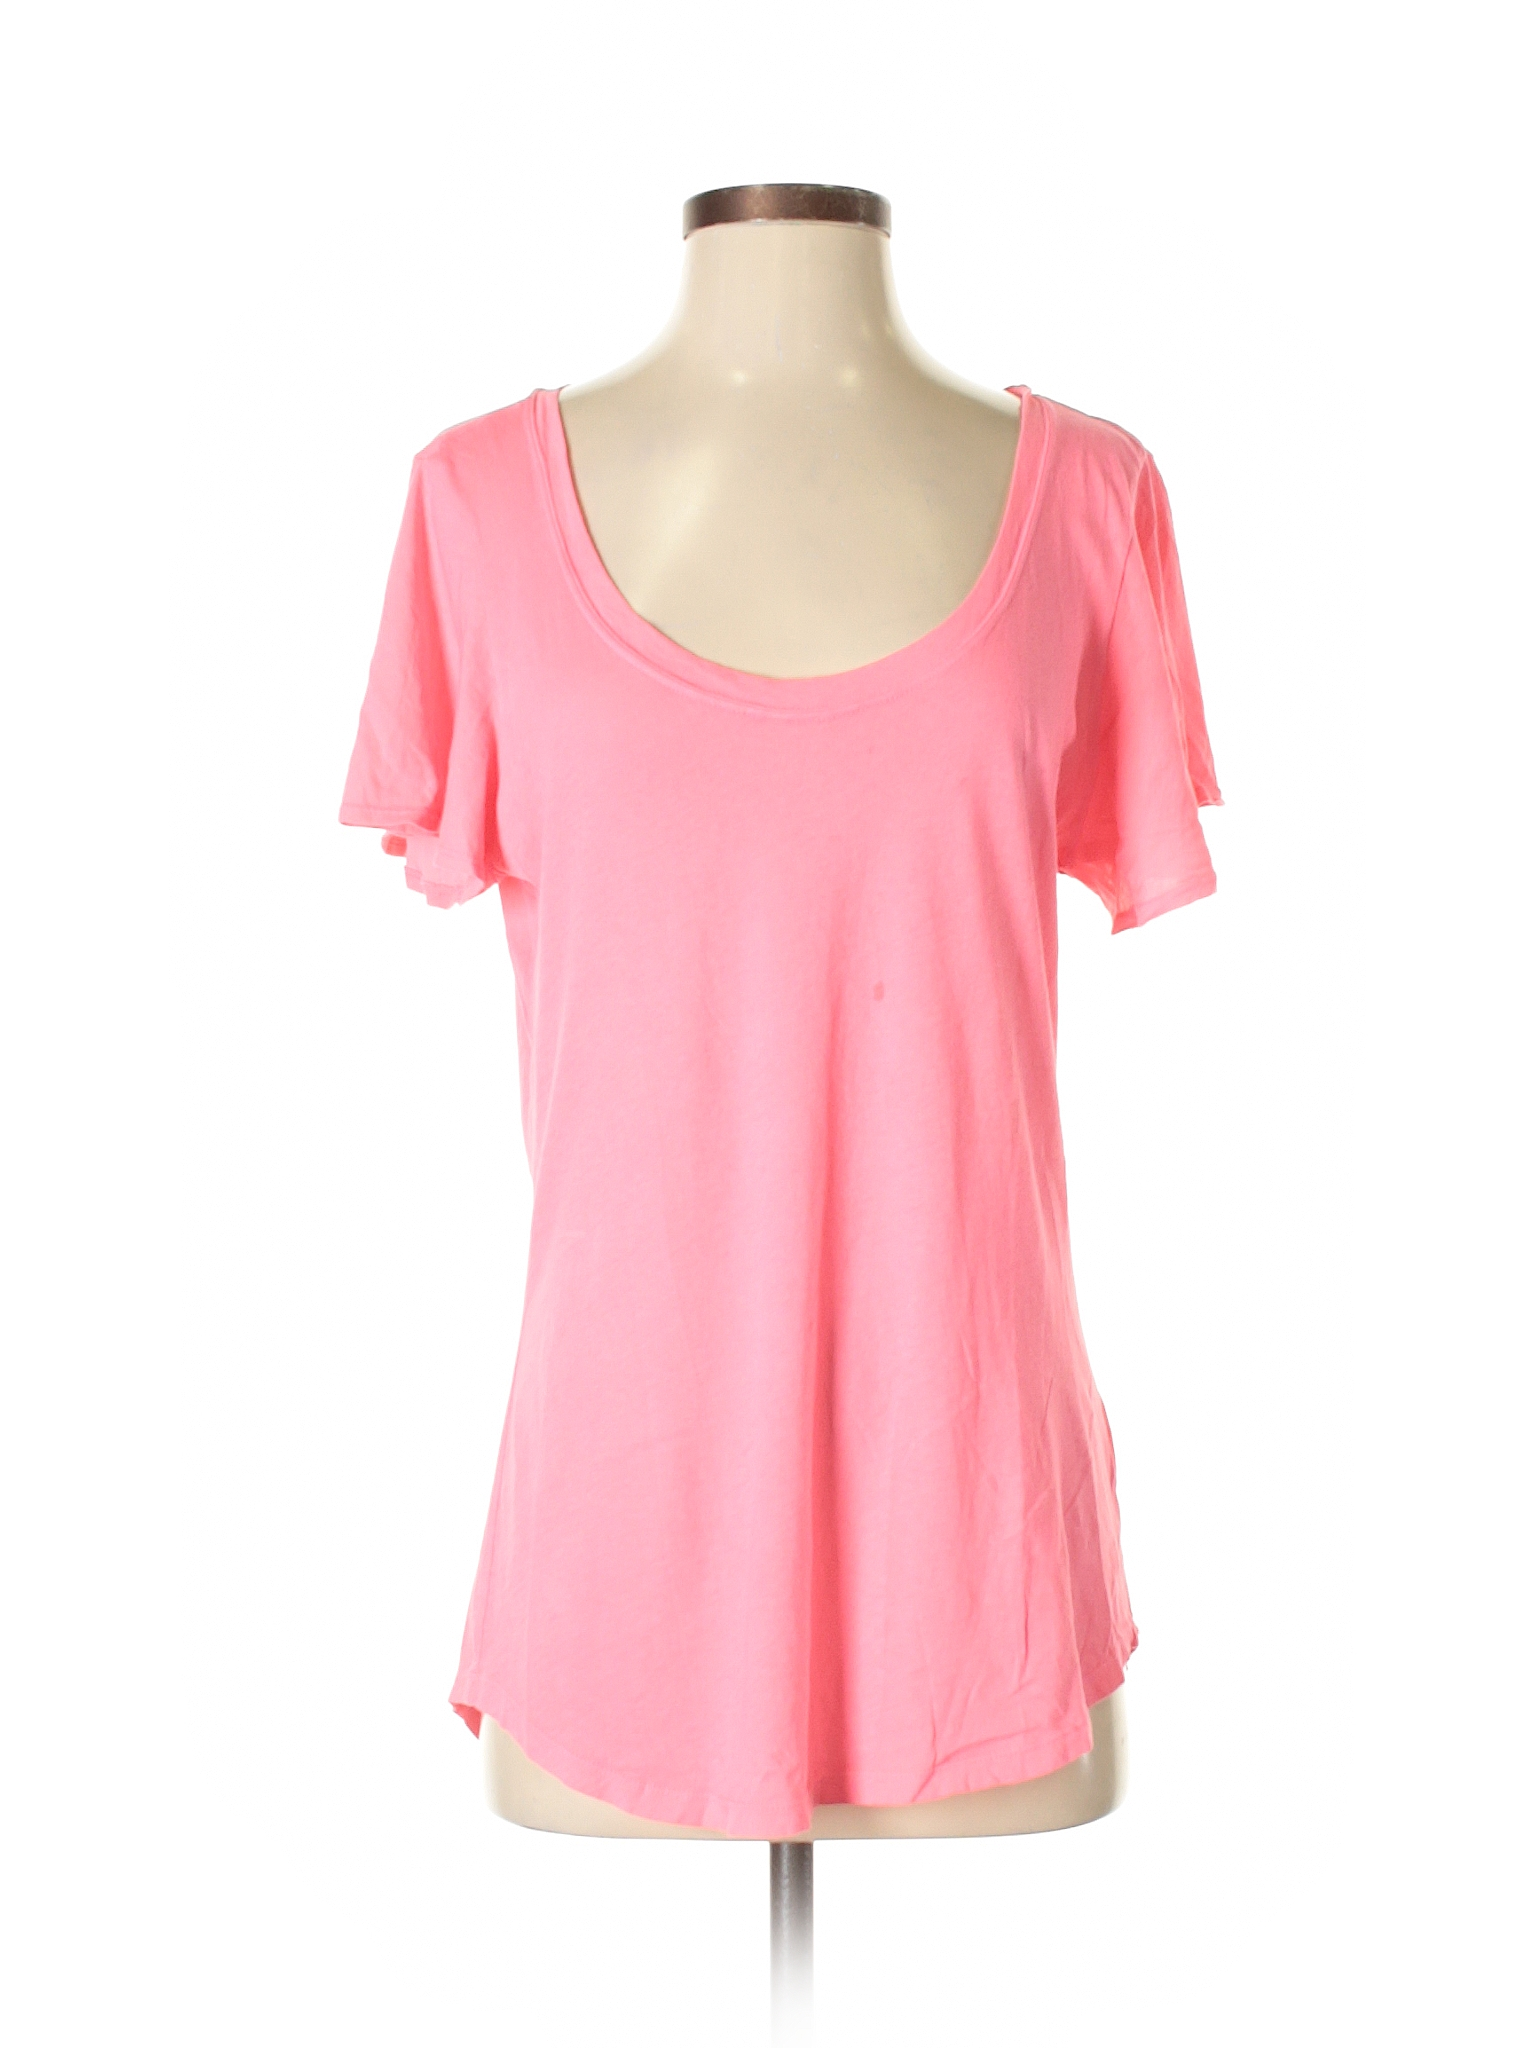 Gap Short Sleeve T Shirt Size 4 00 Pink Women s Tops $7 99